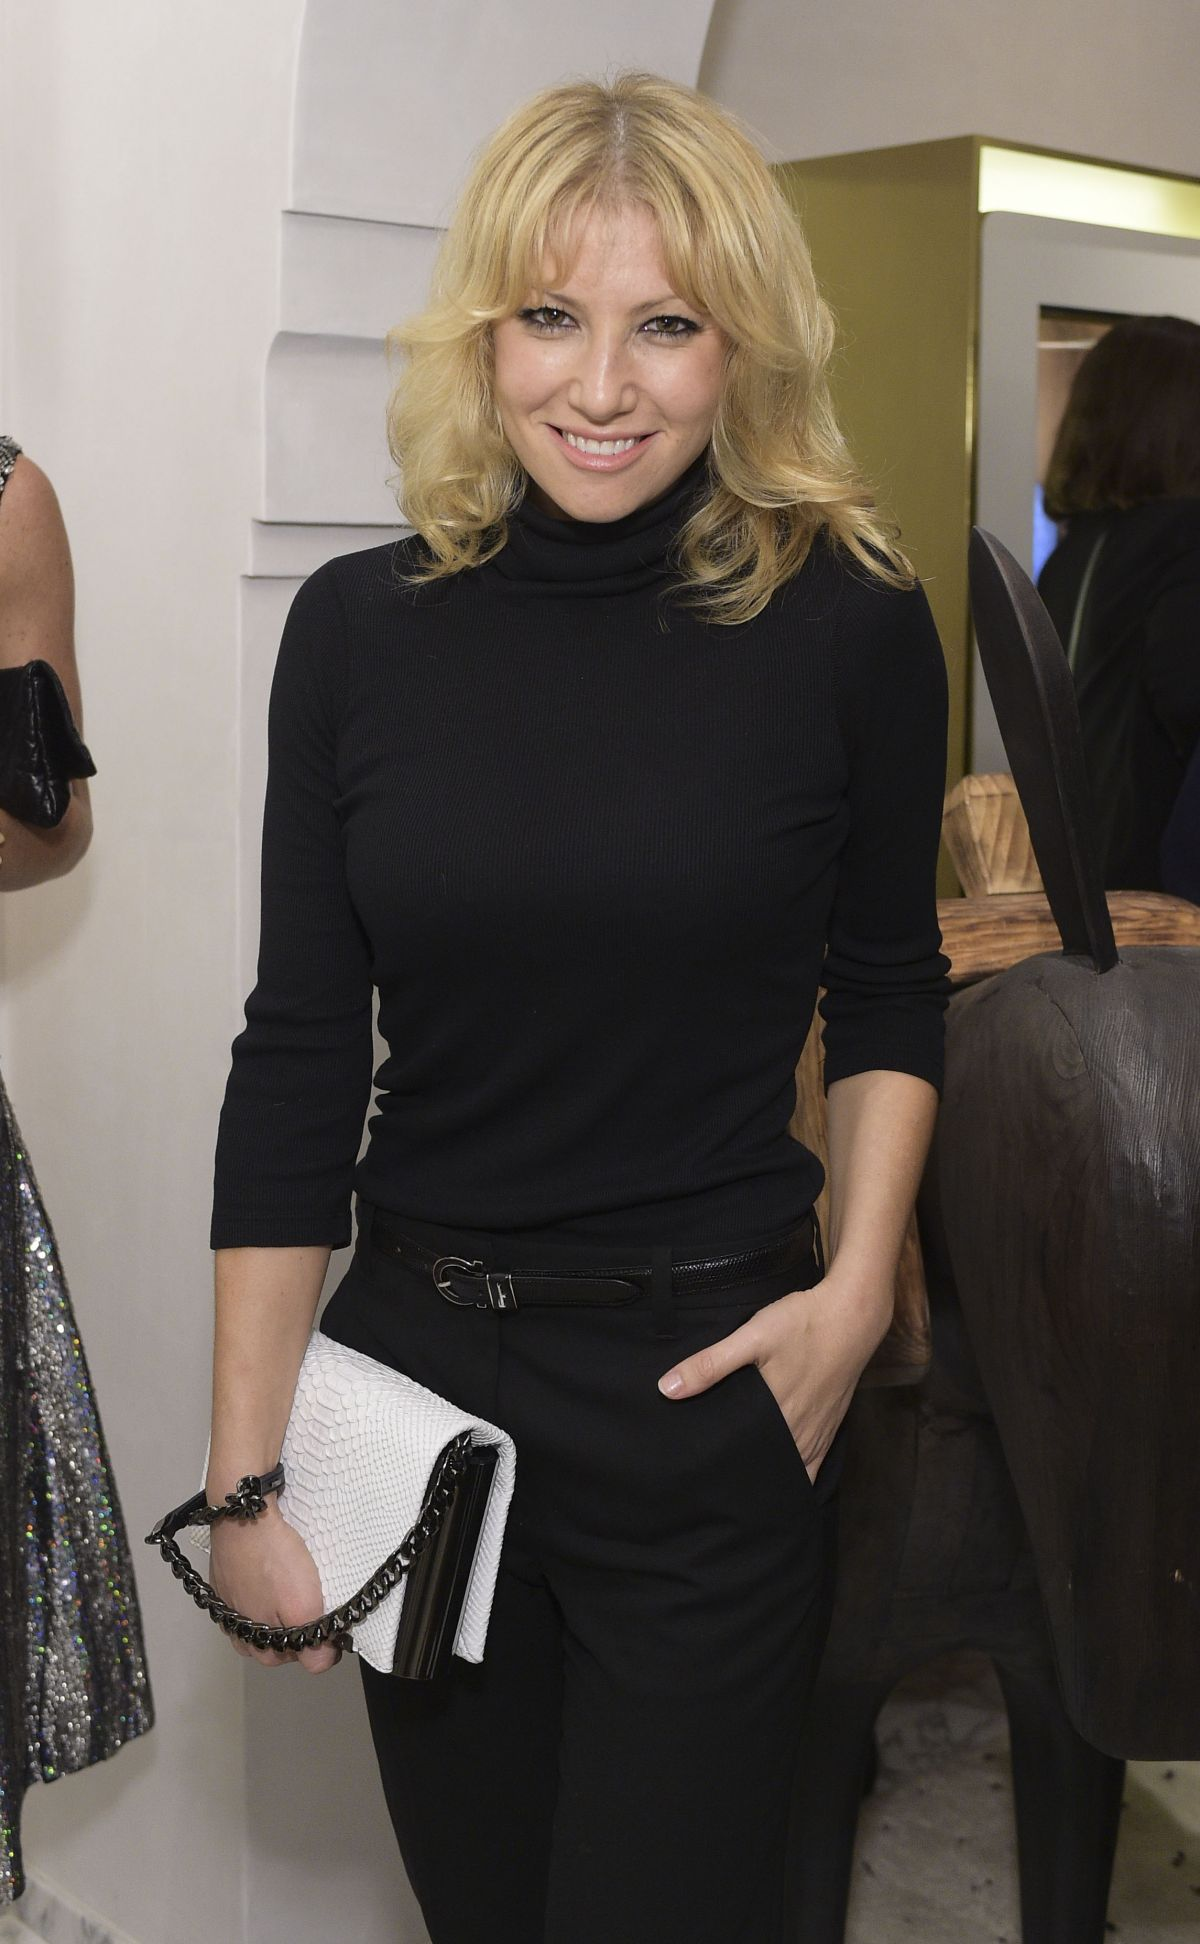 ARI GRAYNOR at Irene Neuwirth Store Opening in West Hollywood